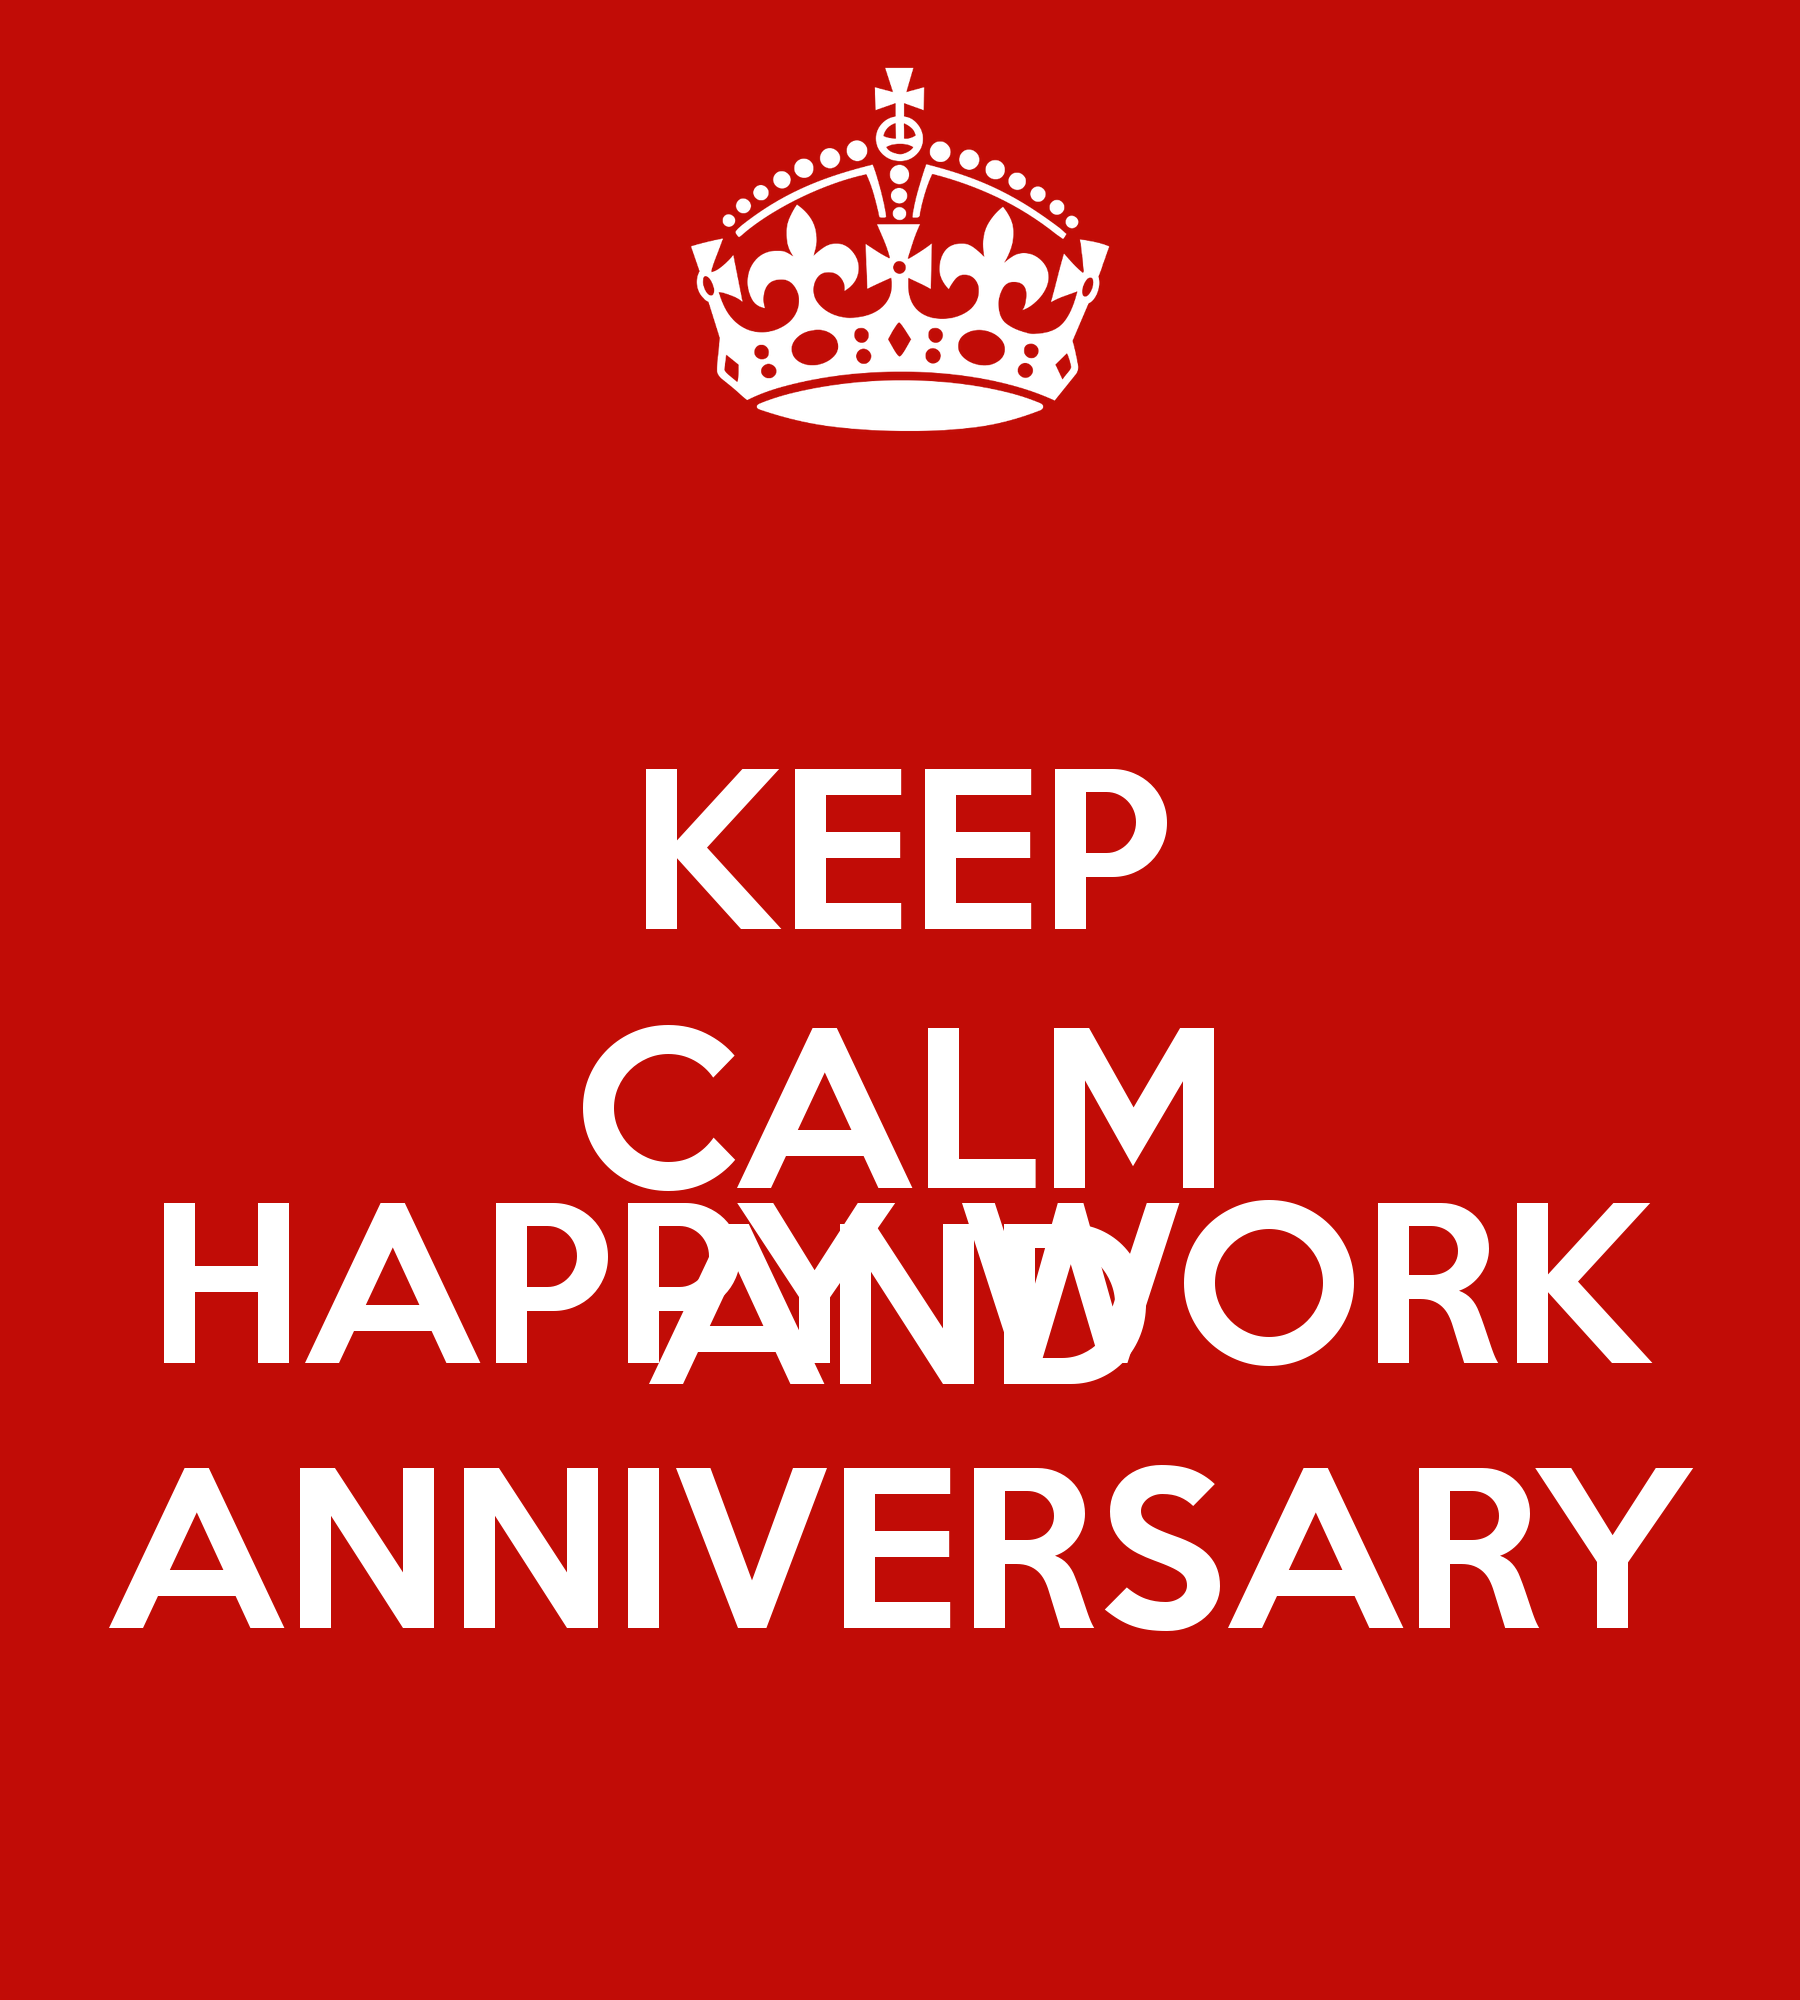 Work Anniversary Quotes: 10th Work Anniversary Quotes. QuotesGram